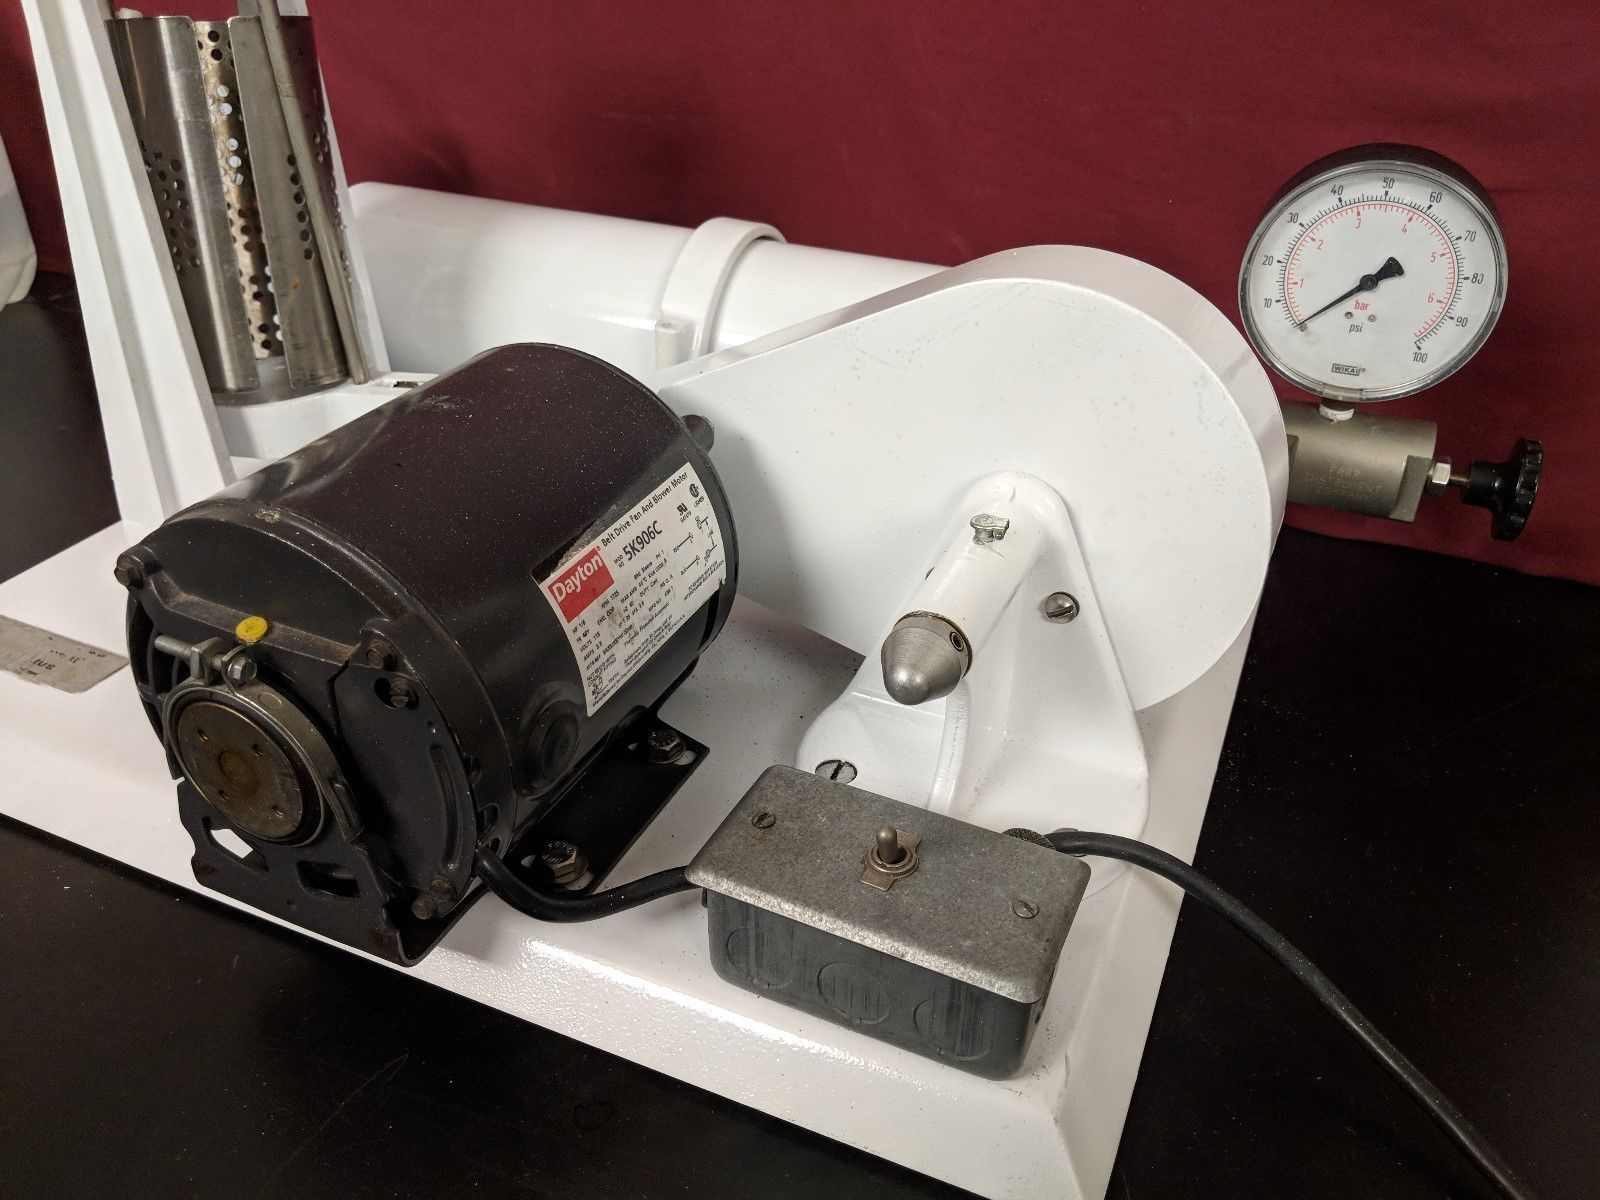 Parr Shaker Hydrogenation Apparatus / RERURBISHED / TESTED / 30 DAY GUARANTEE /